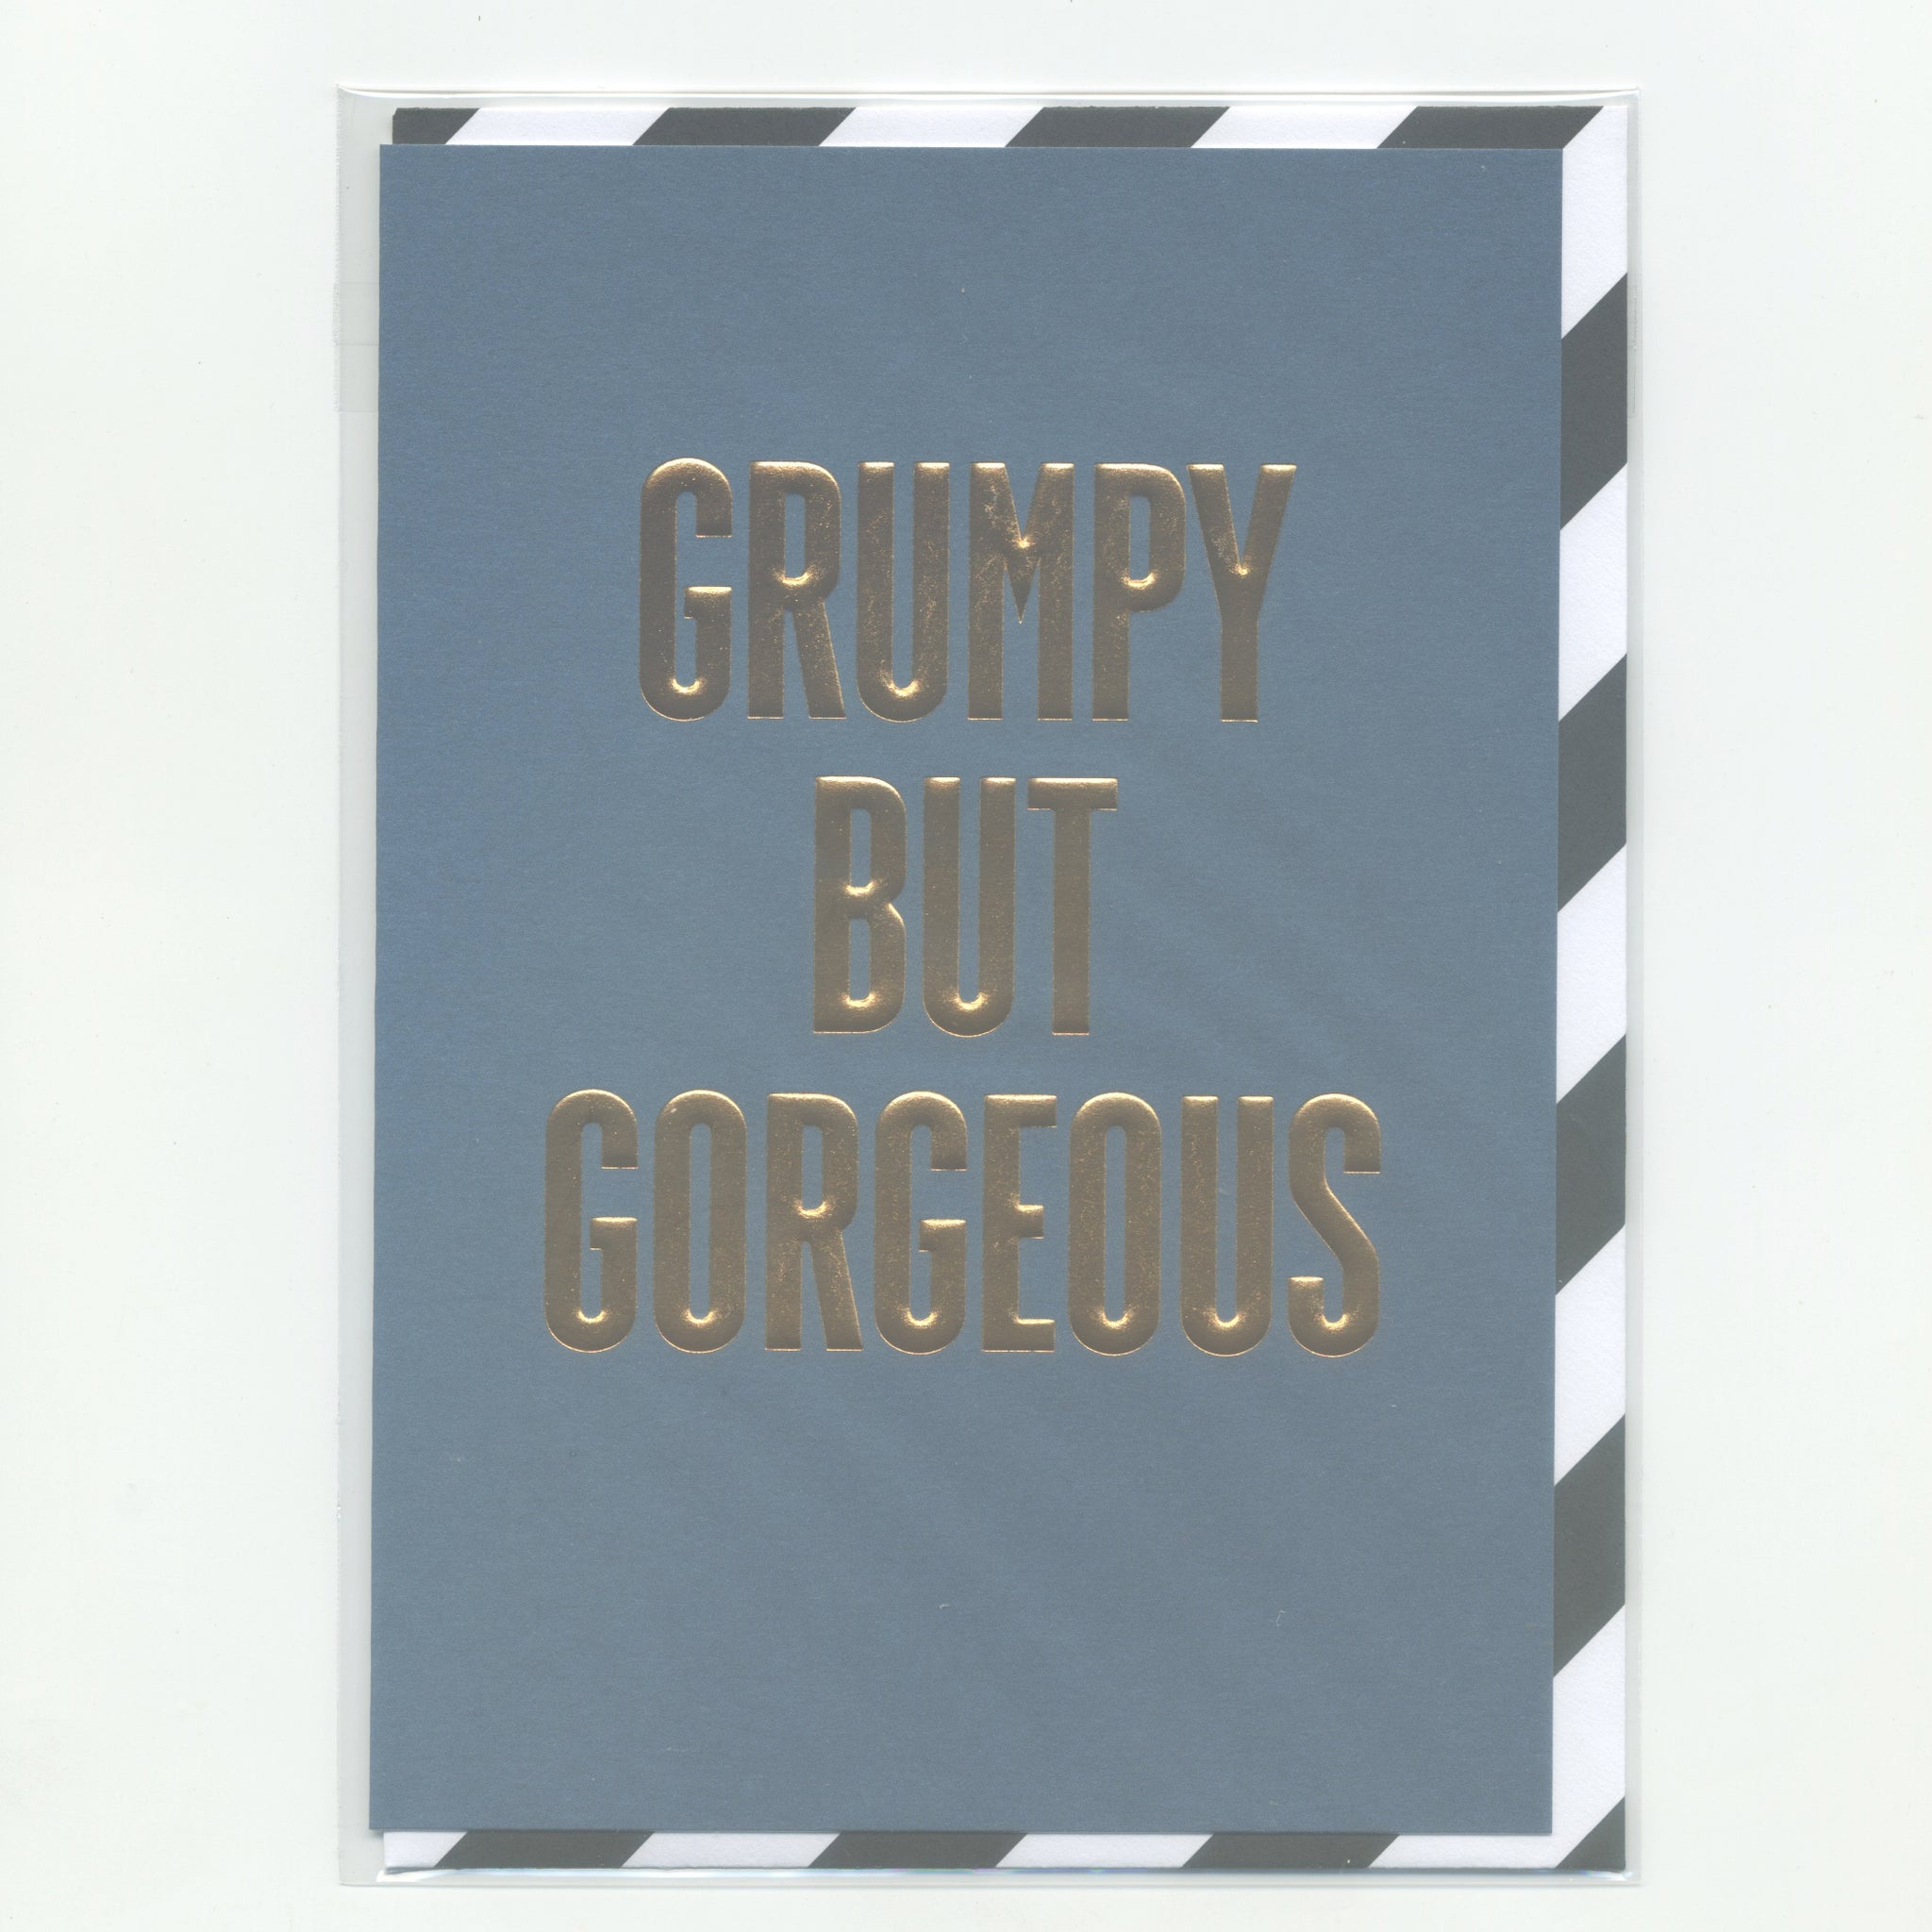 Grumpy but Gorgeous - Card